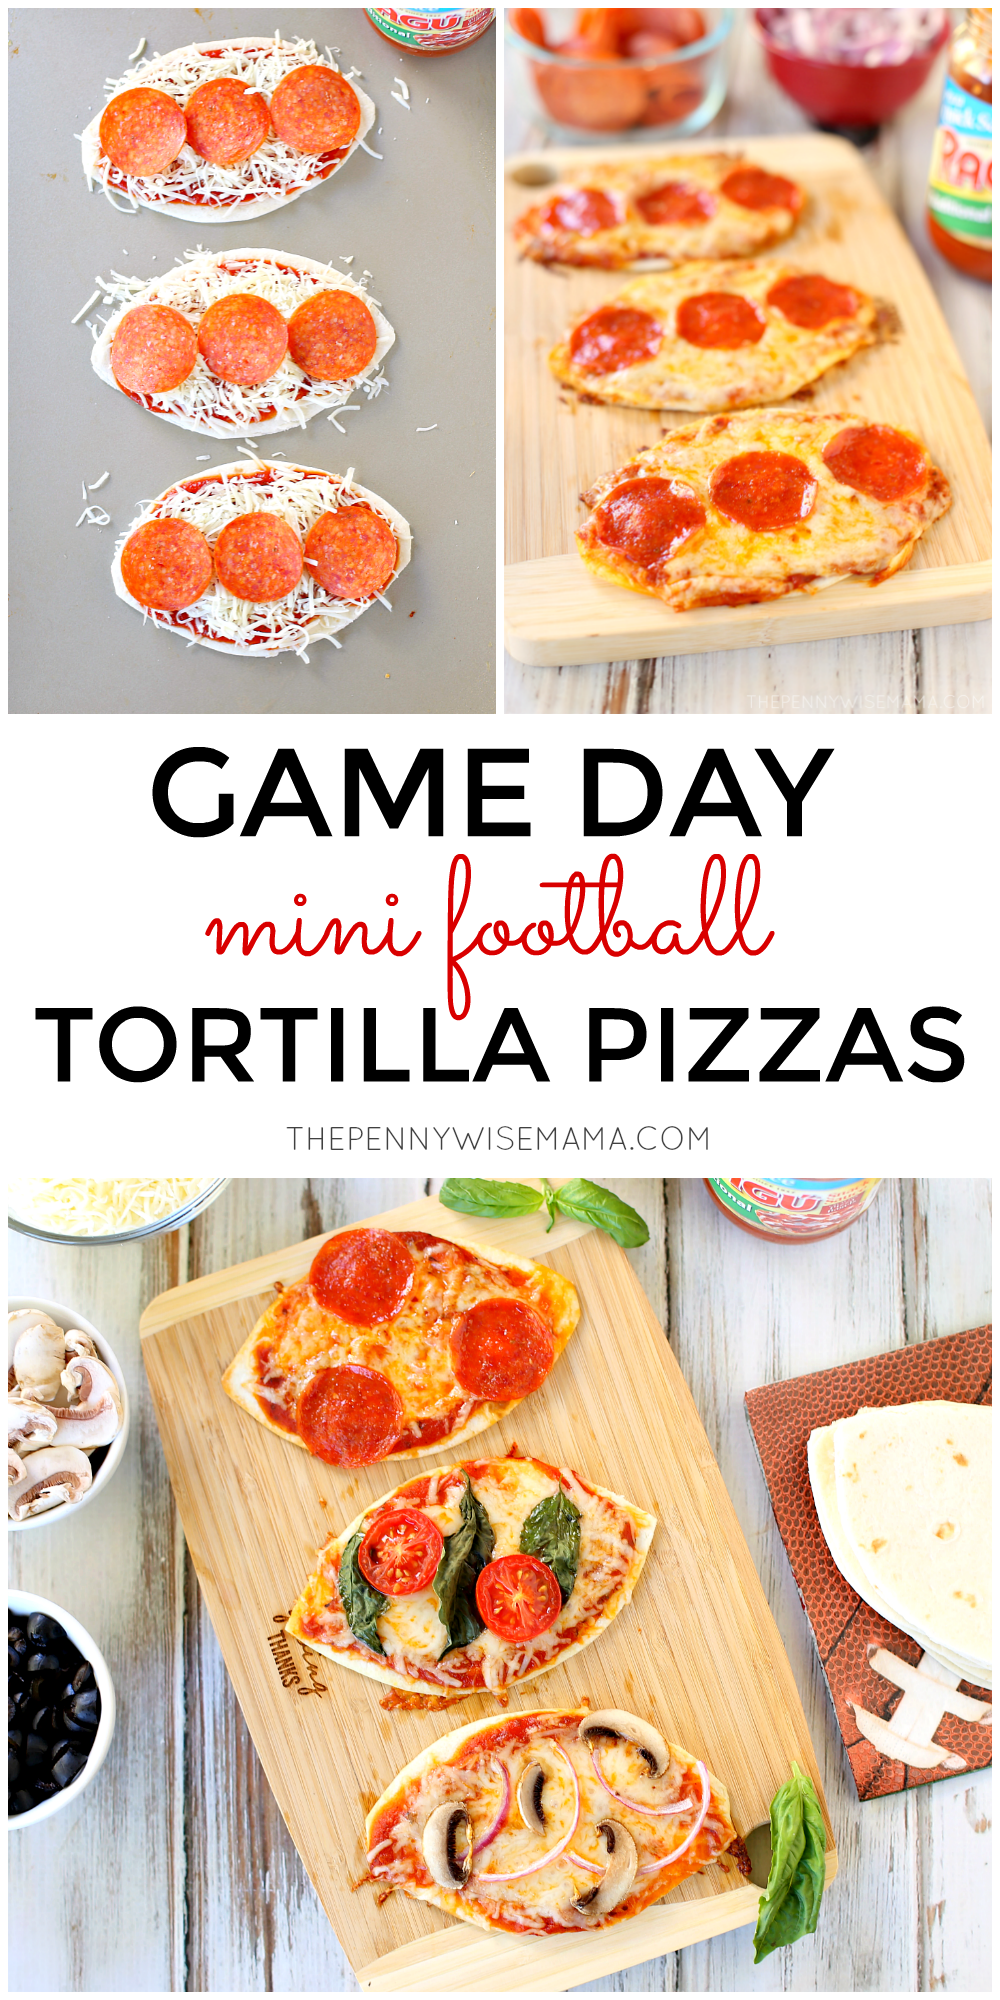 These mini tortilla pizzas shaped like footballs are perfect for Game Day! Click image to get the full recipe.